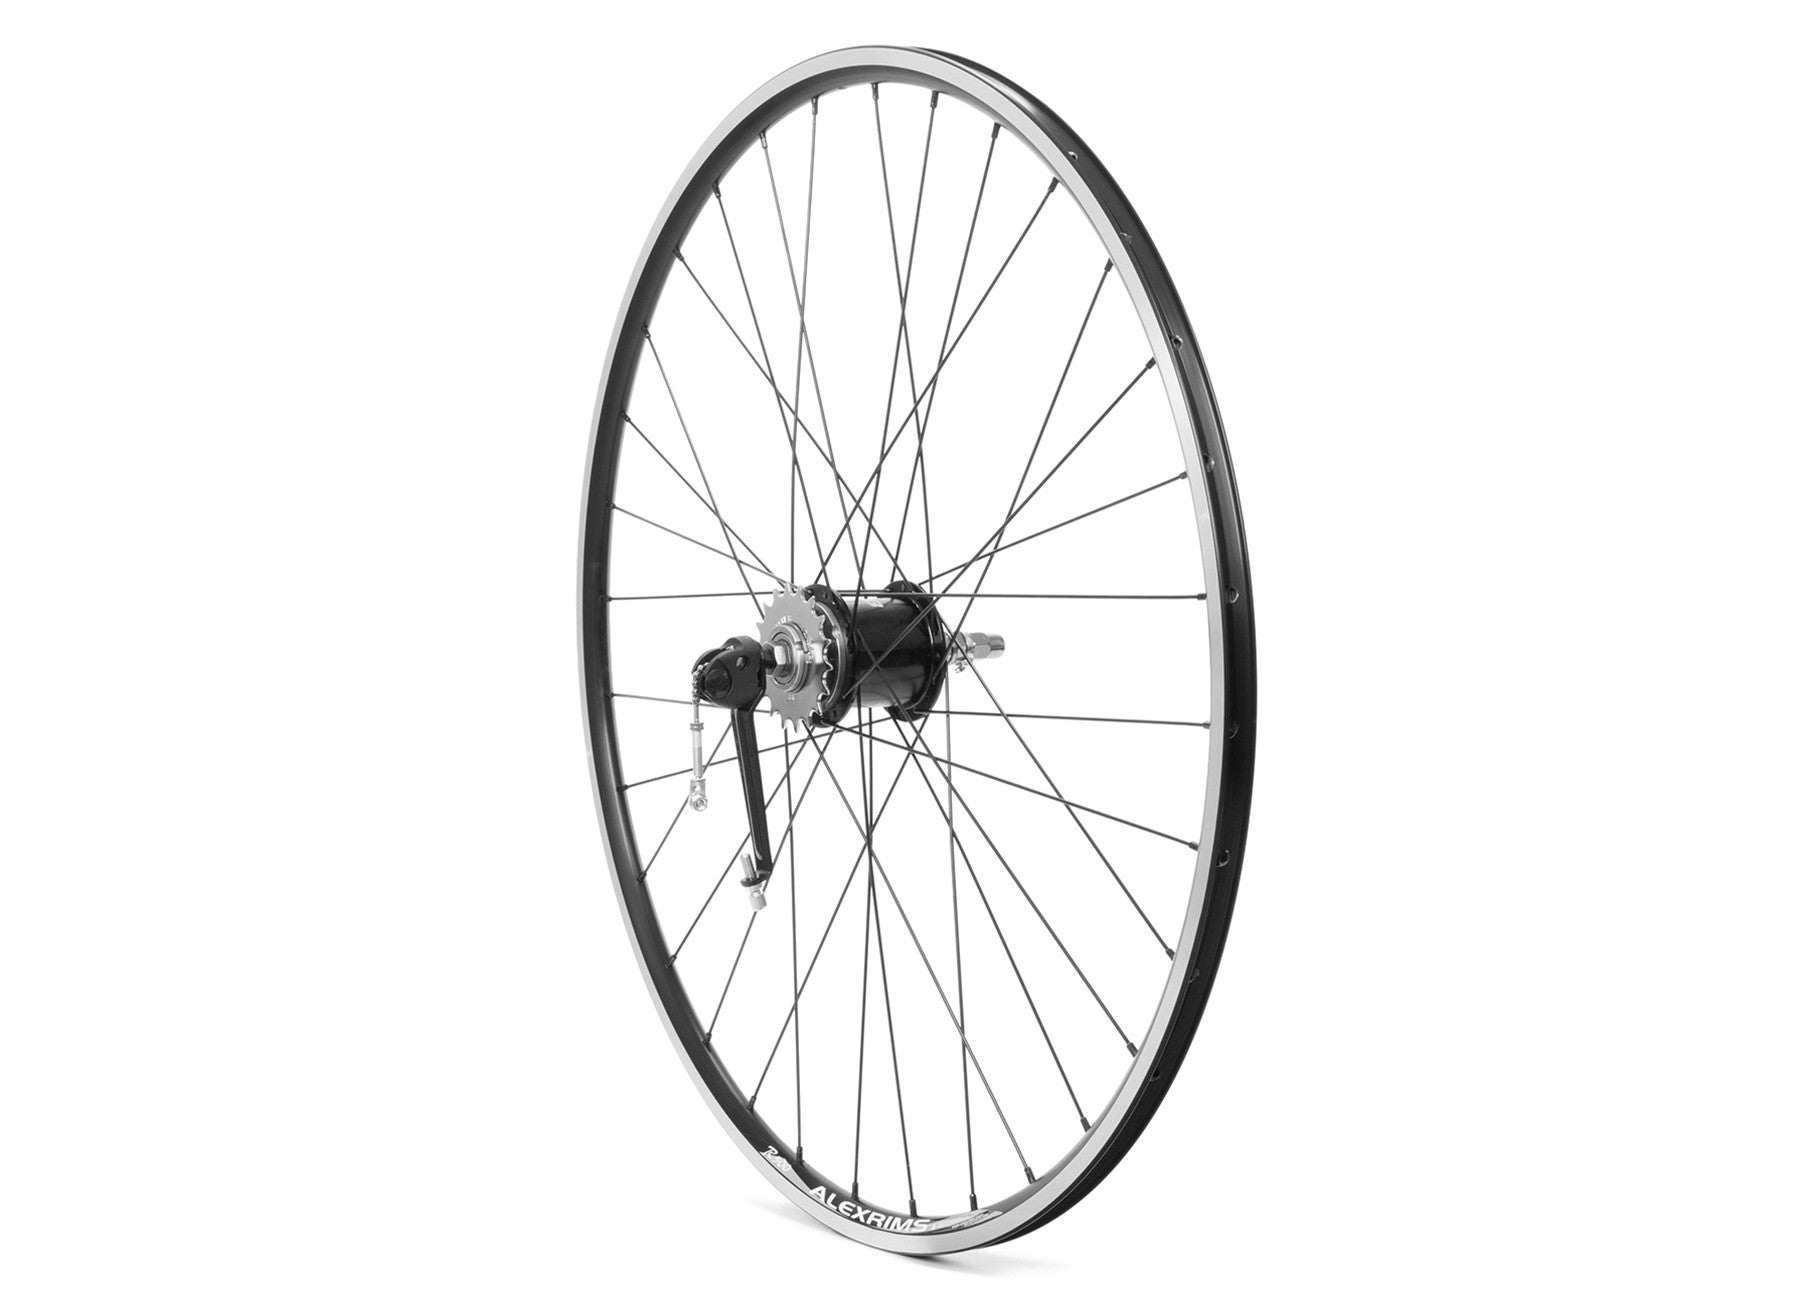 WHEEL SET 3 SPEED INTERNAL